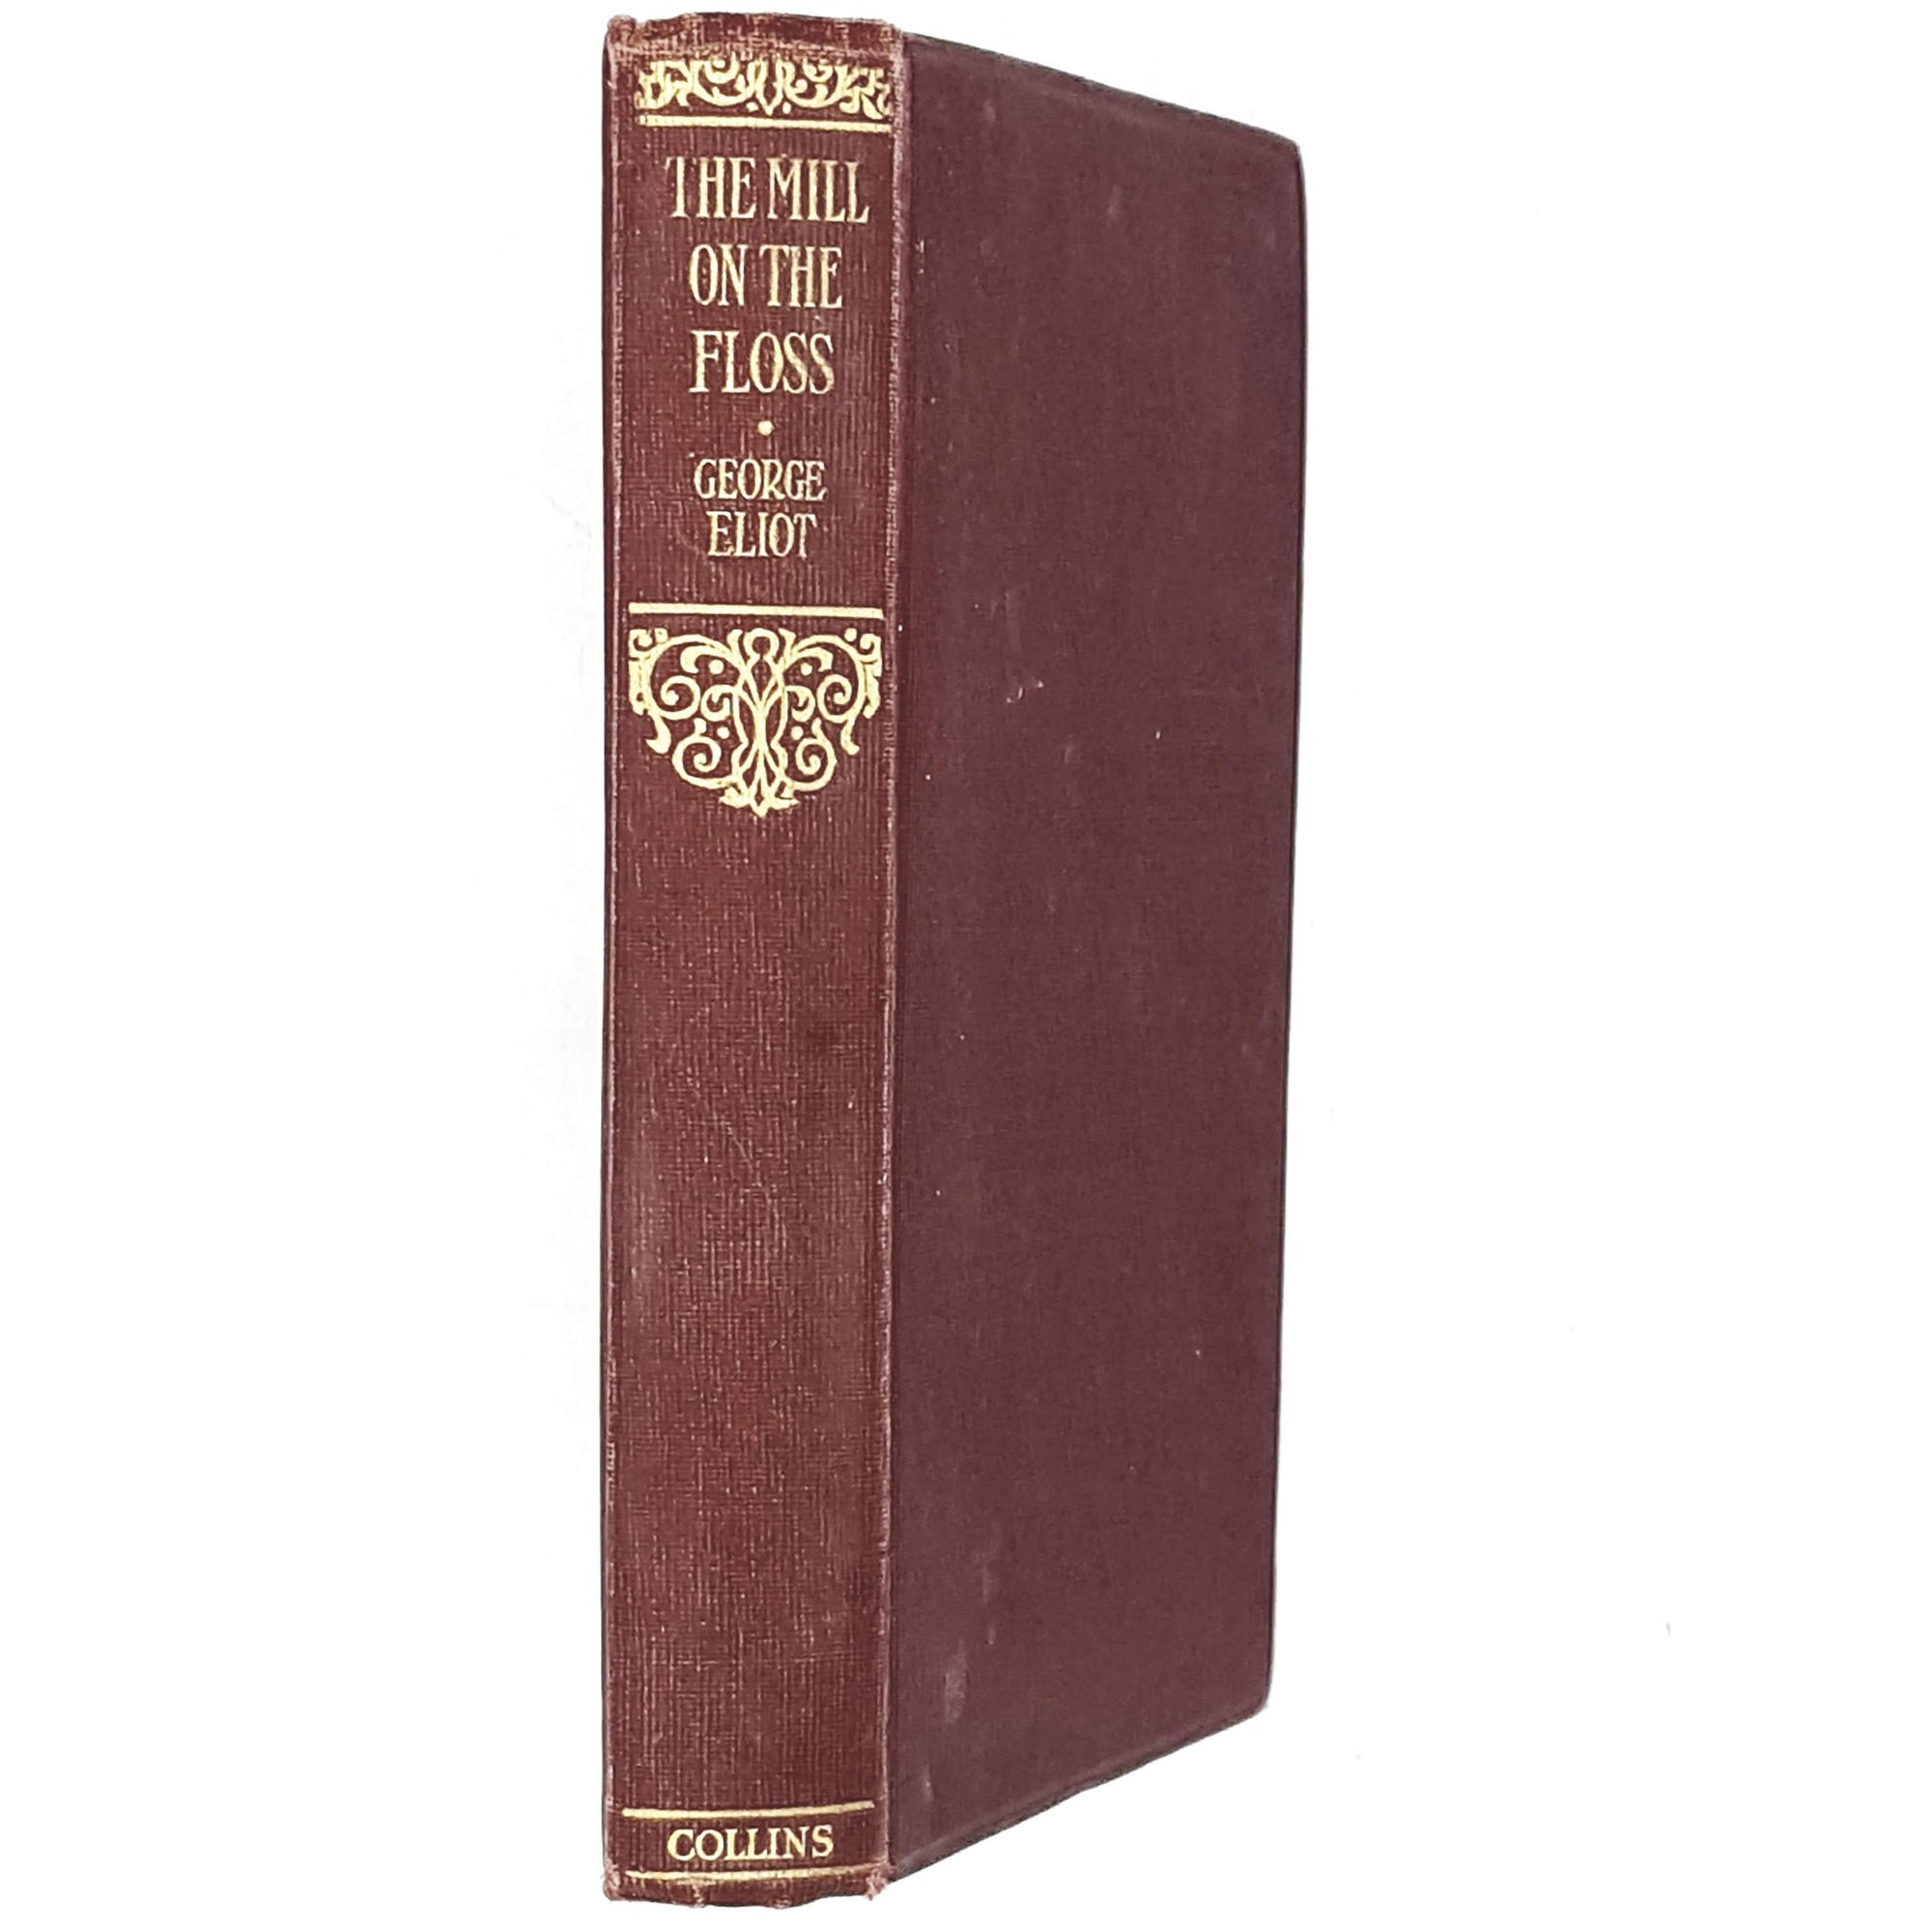 red-mill-floss-george-eliot-classic-vintage-country-house-library